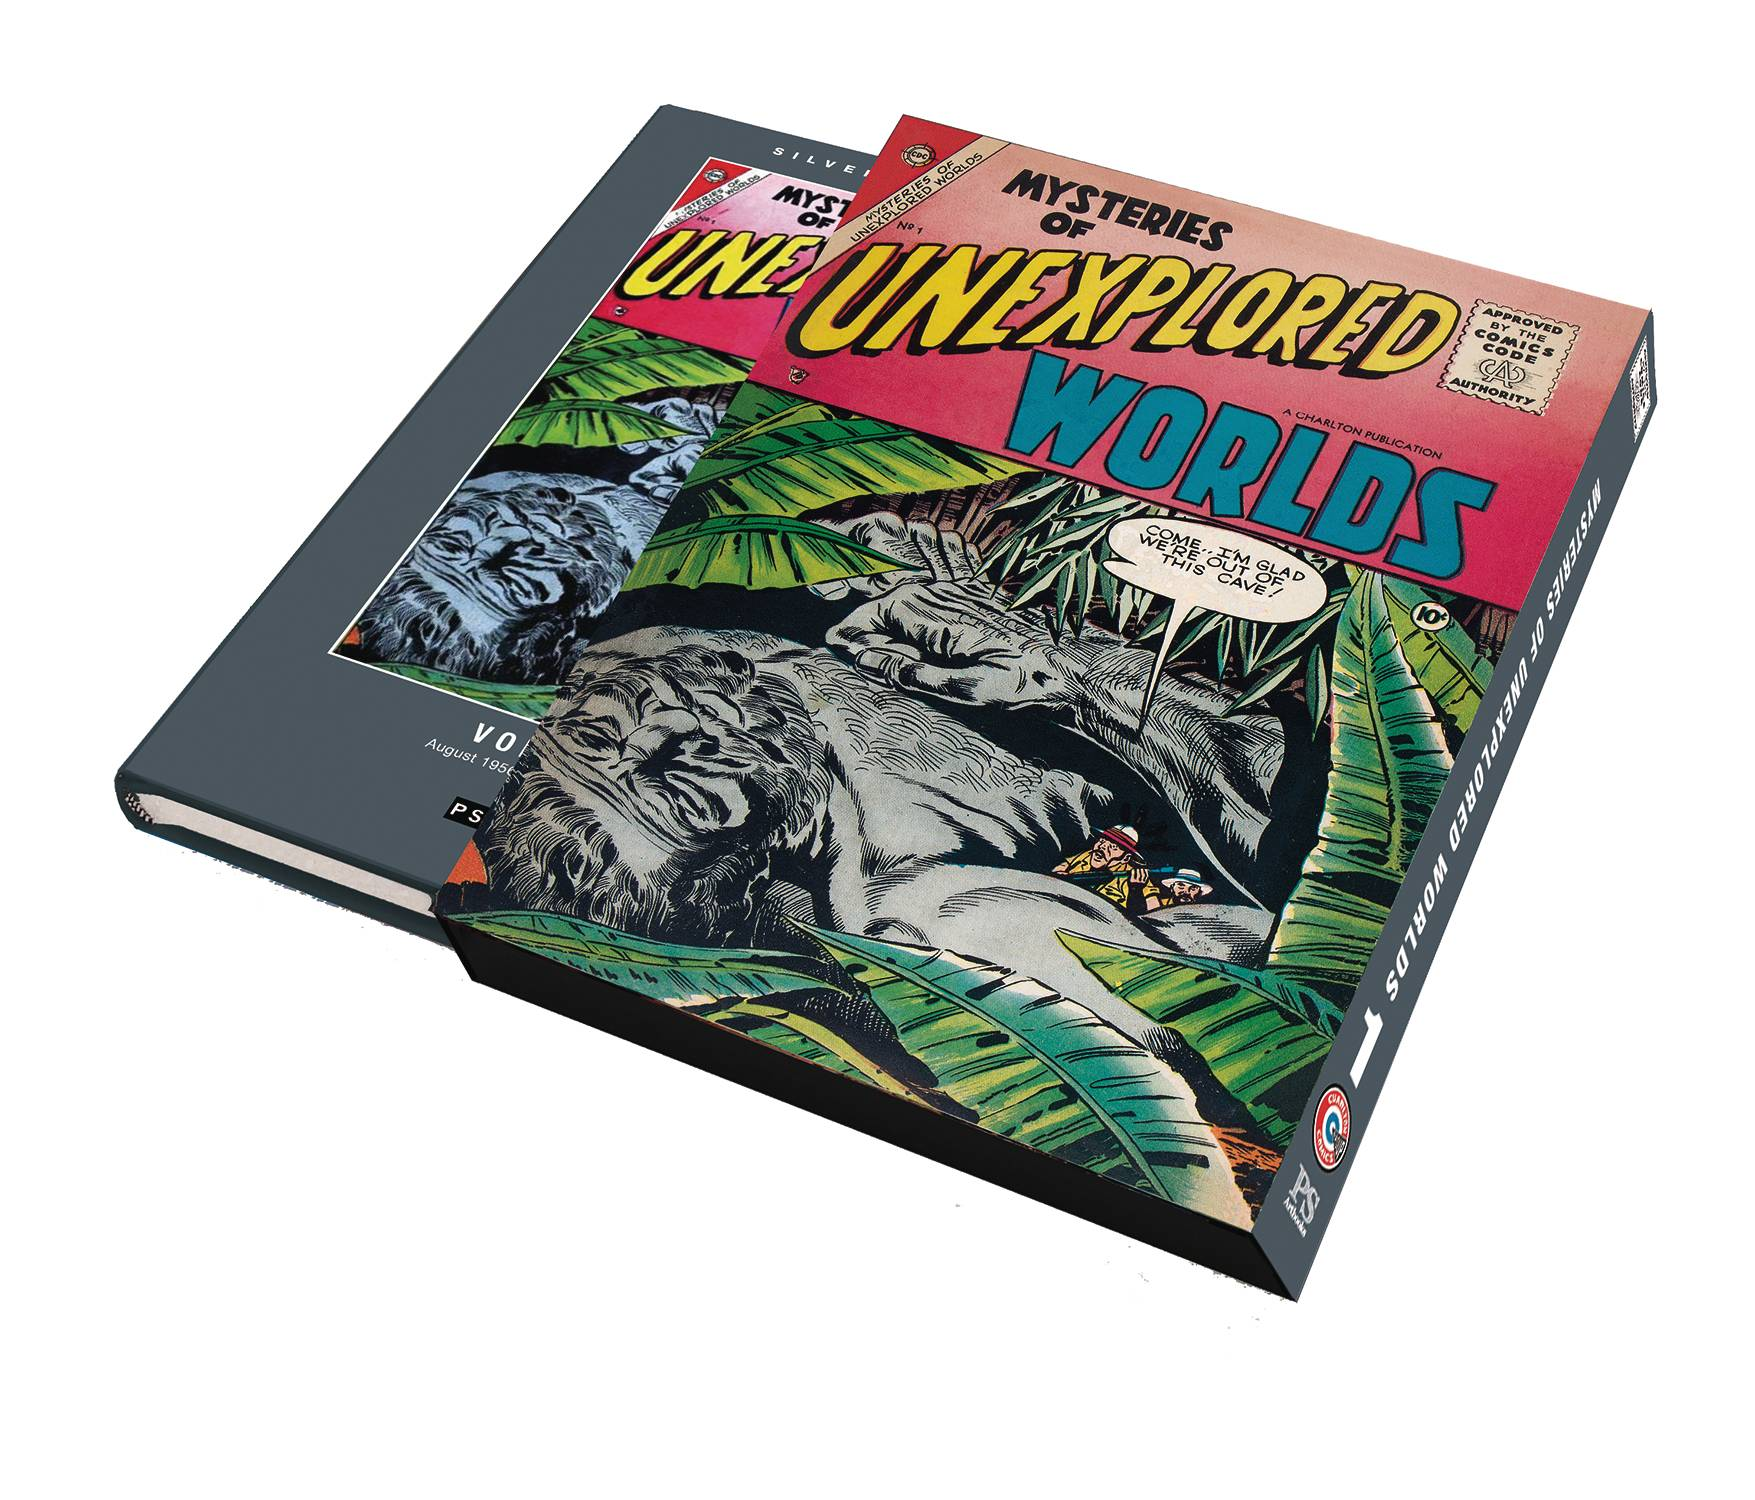 SILVER AGE MYSTERIES UNEXPLORED WORLDS SLIPCASE VOL 01